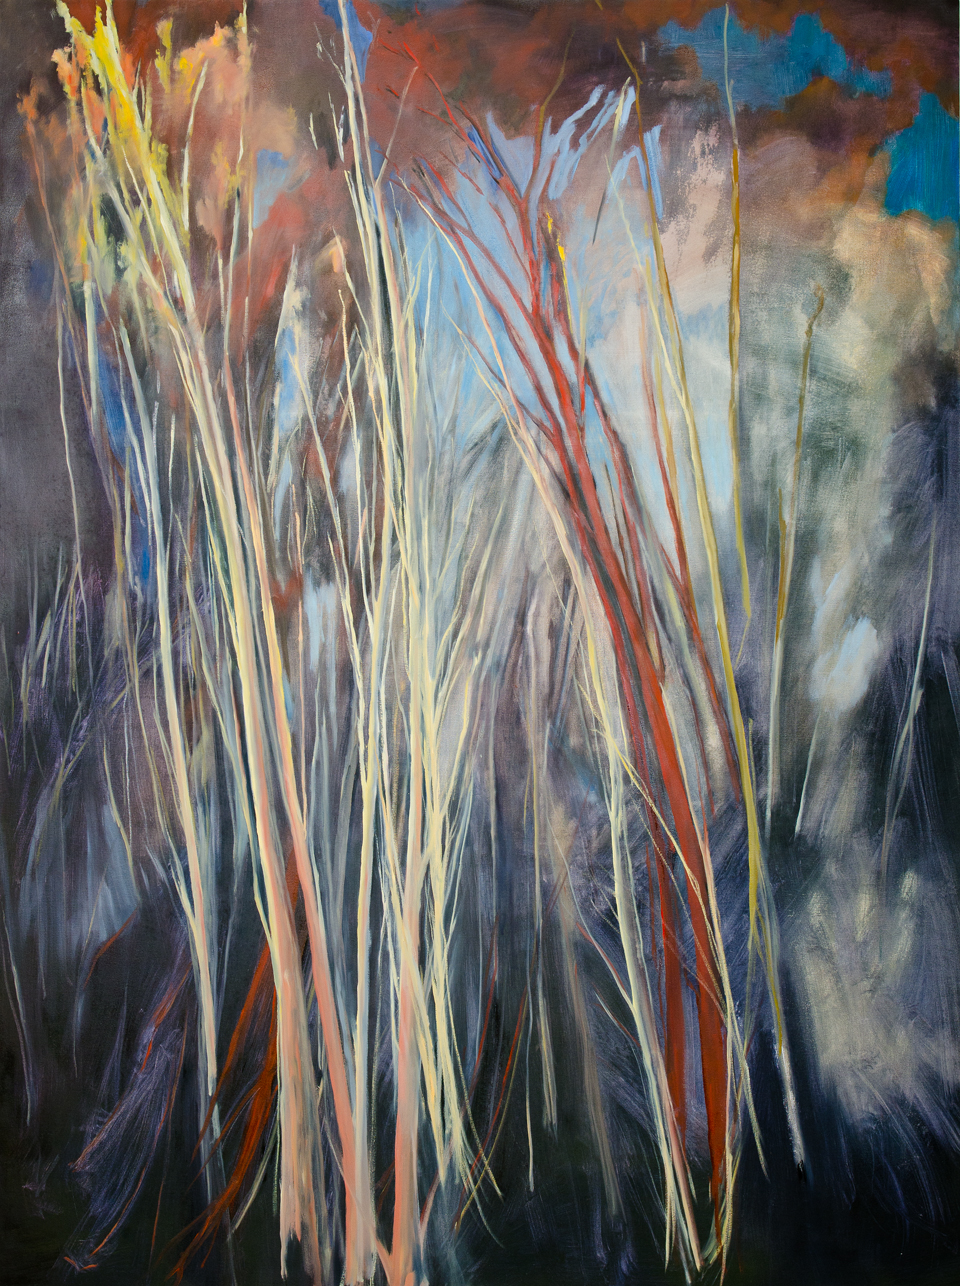 Scuro , 2011, Oil on canvas, 96 x 72 inches (Private Collection, Fredericton, NB)